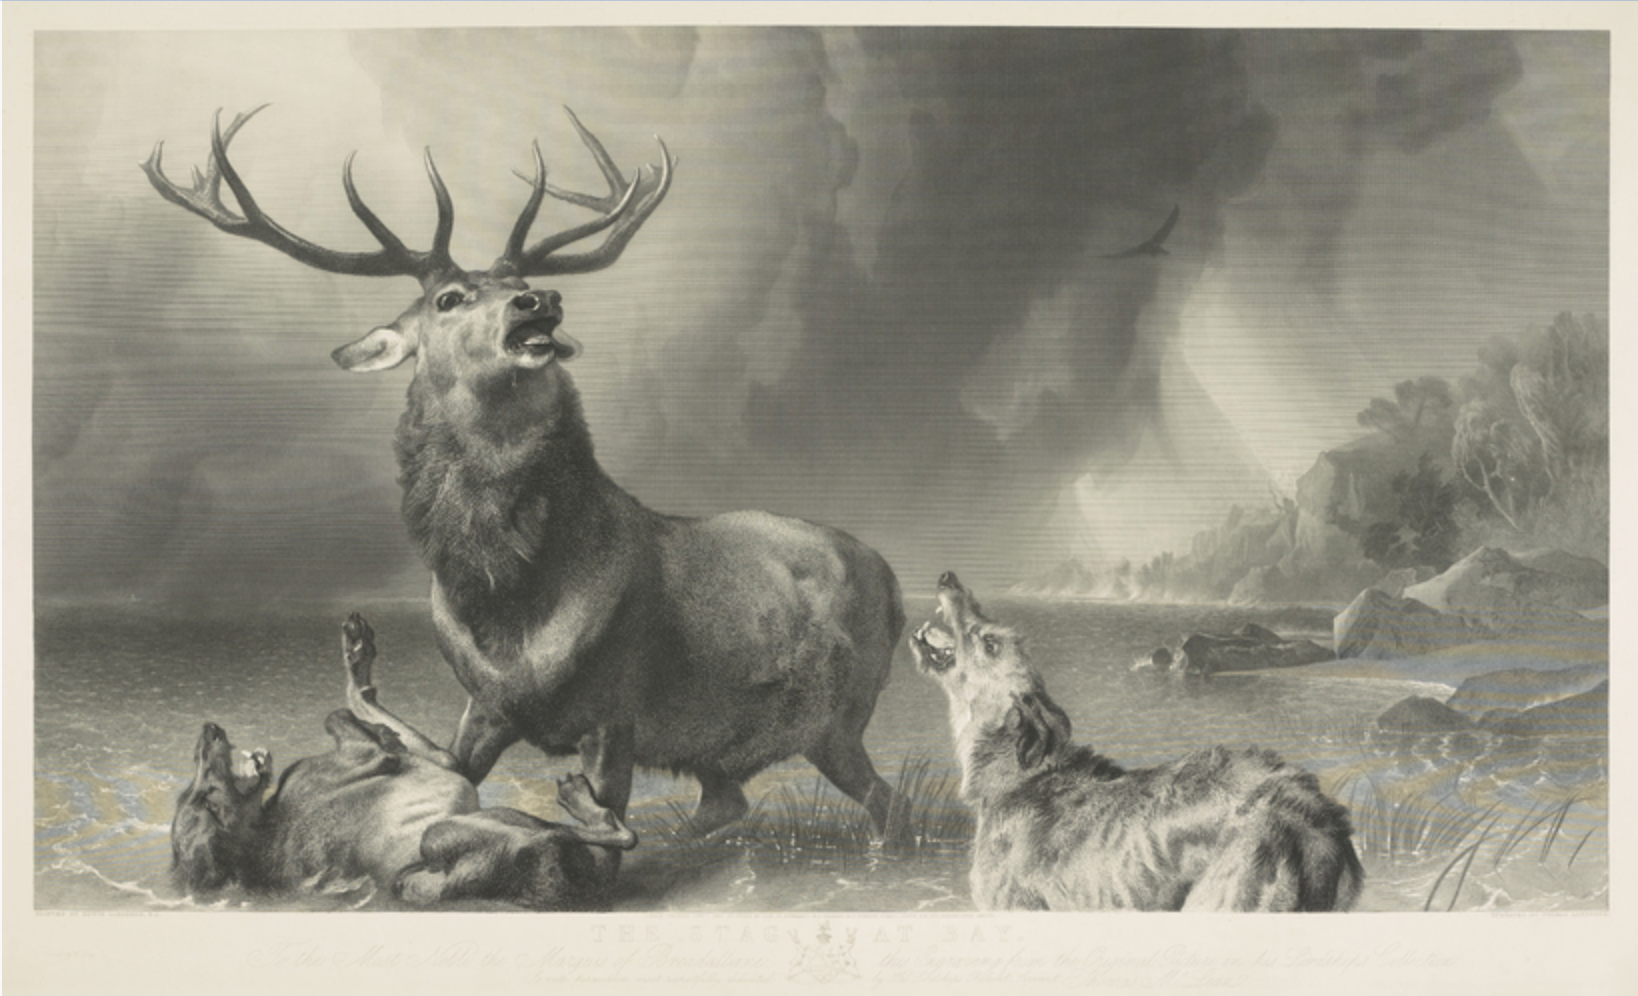 Edwin and Thomas Landseer, The Stag at Bay, engraving, approximately 1848, image courtesy of the Royal Collection Trust